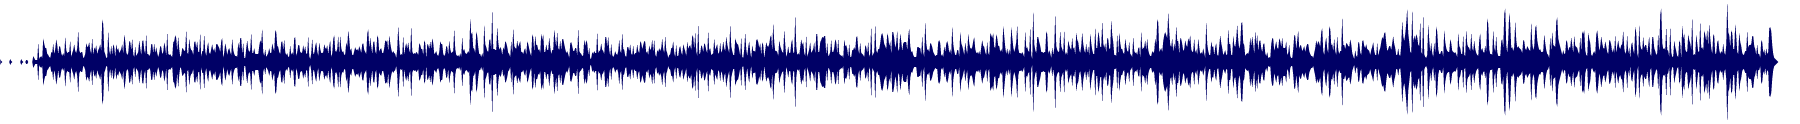 waveform of track #73138